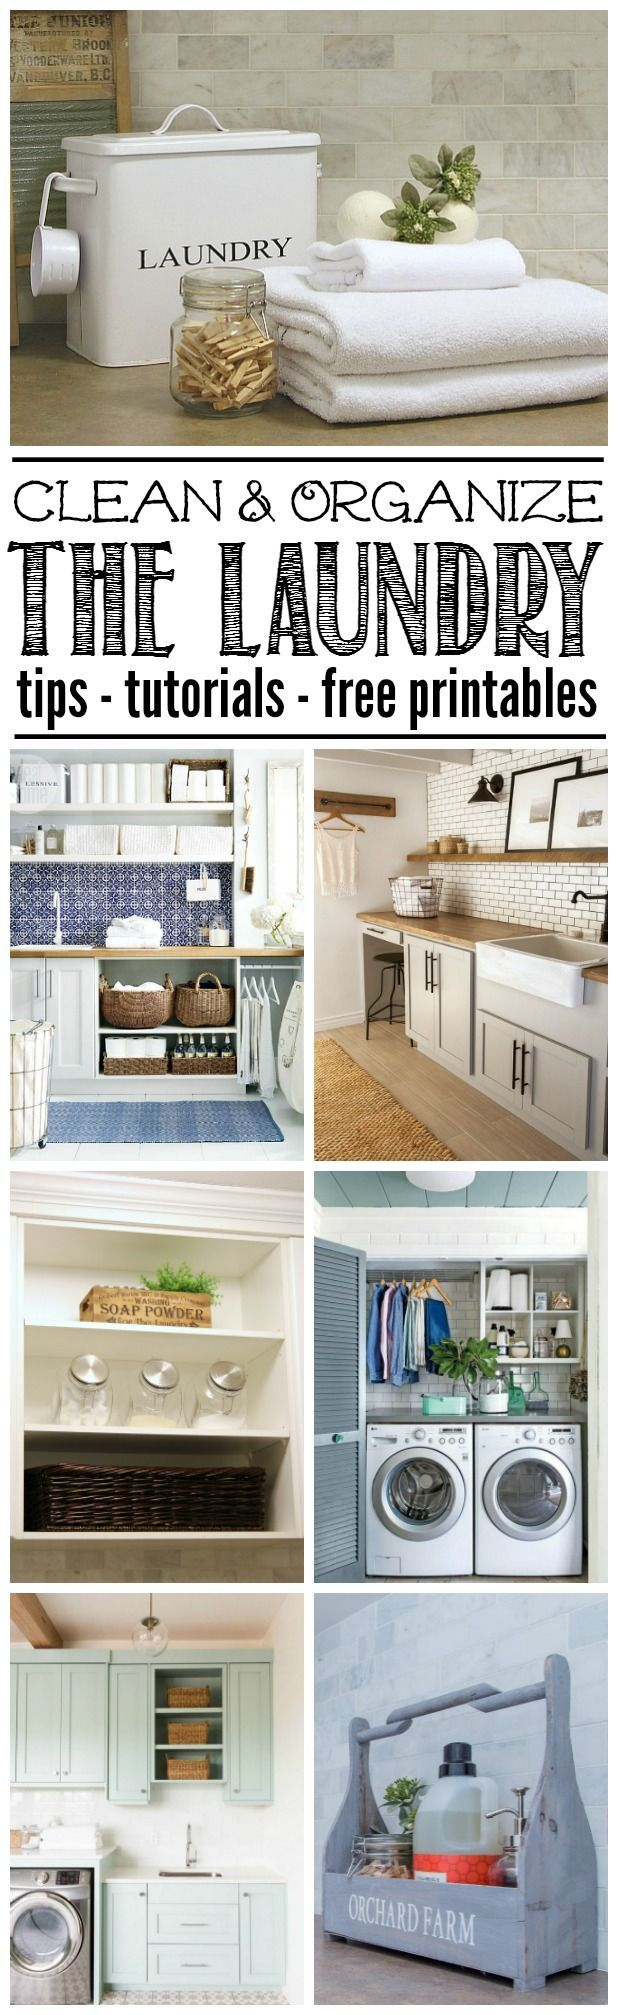 868 best Organizing Tips for your Home images on Pinterest ...